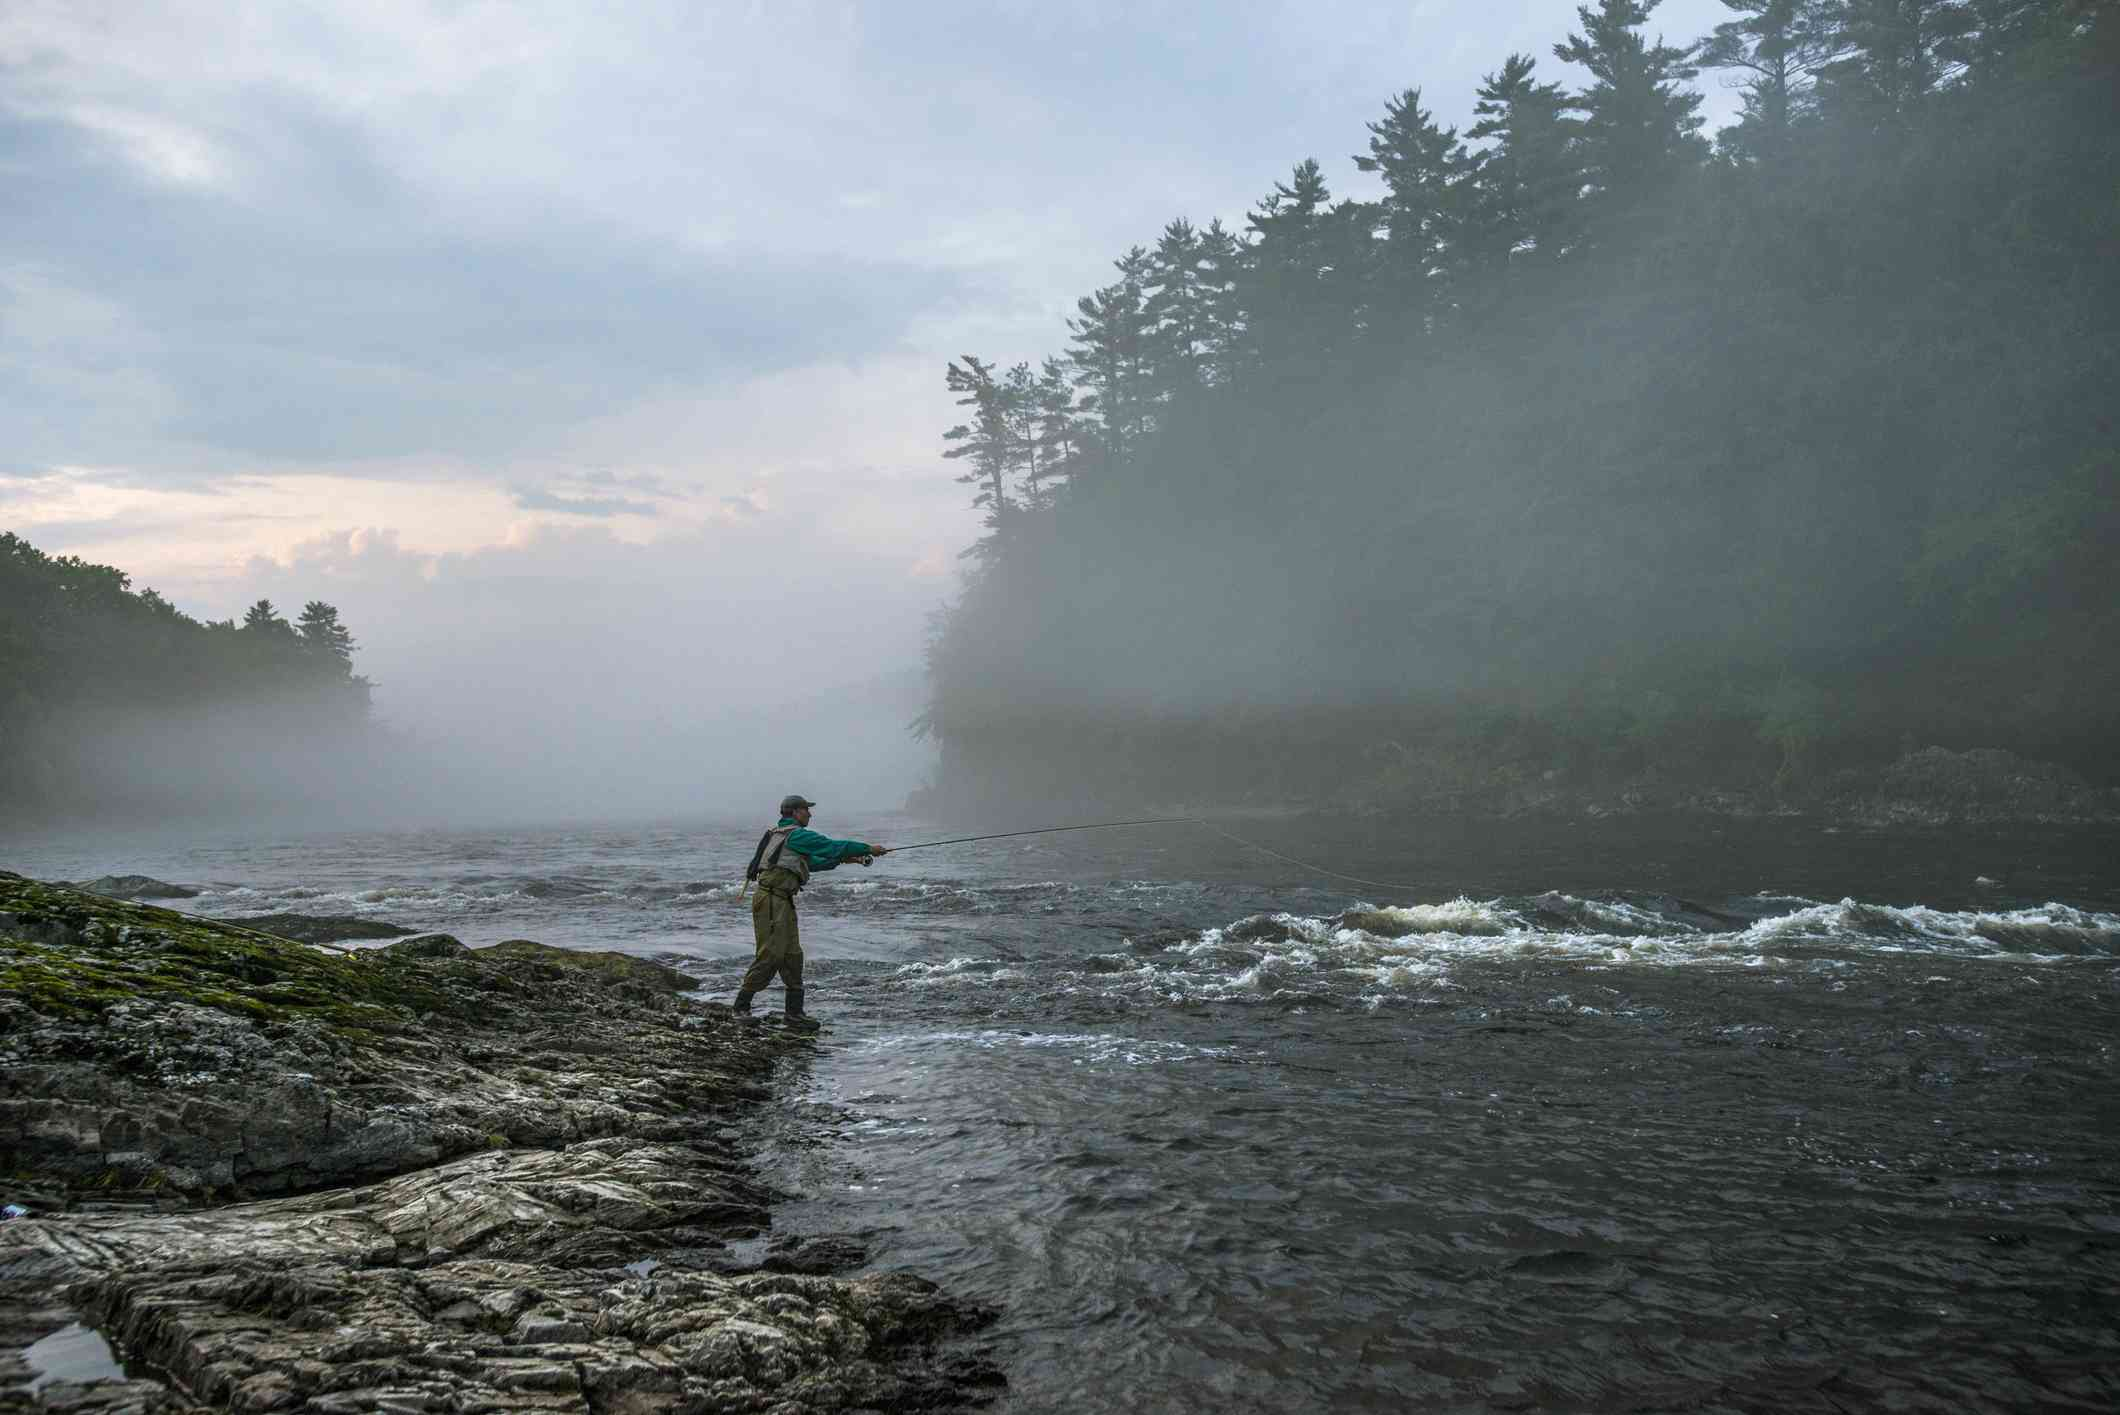 Fly fisherman on the Kennebec River, Maine.